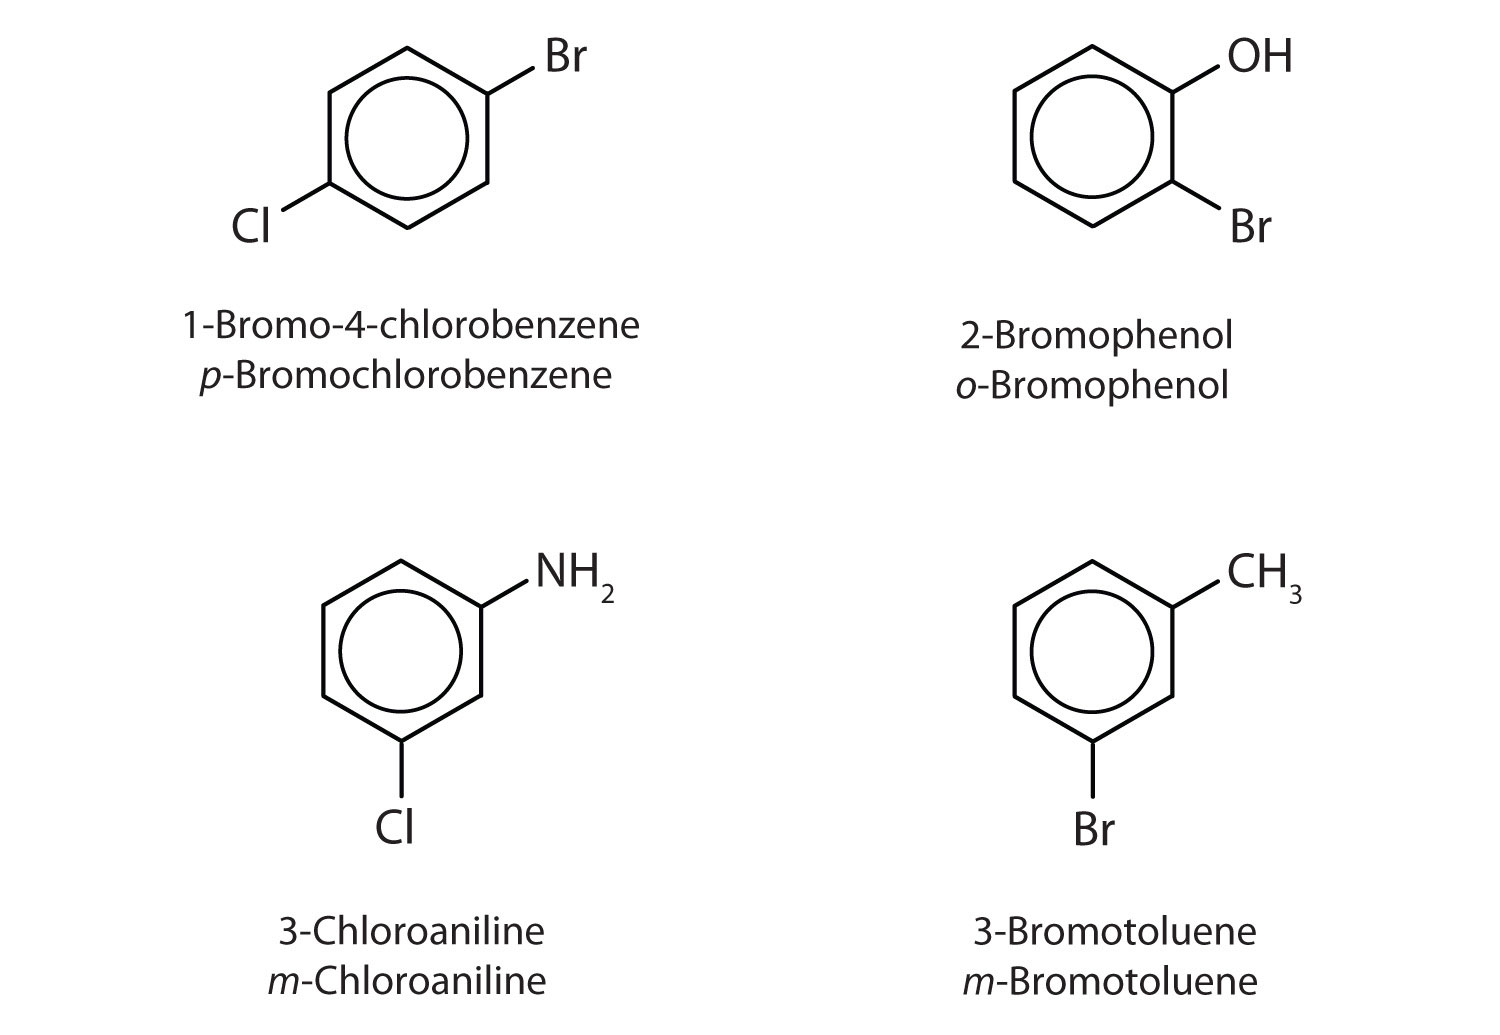 Structure And Nomenclature Of Aromatic Compounds